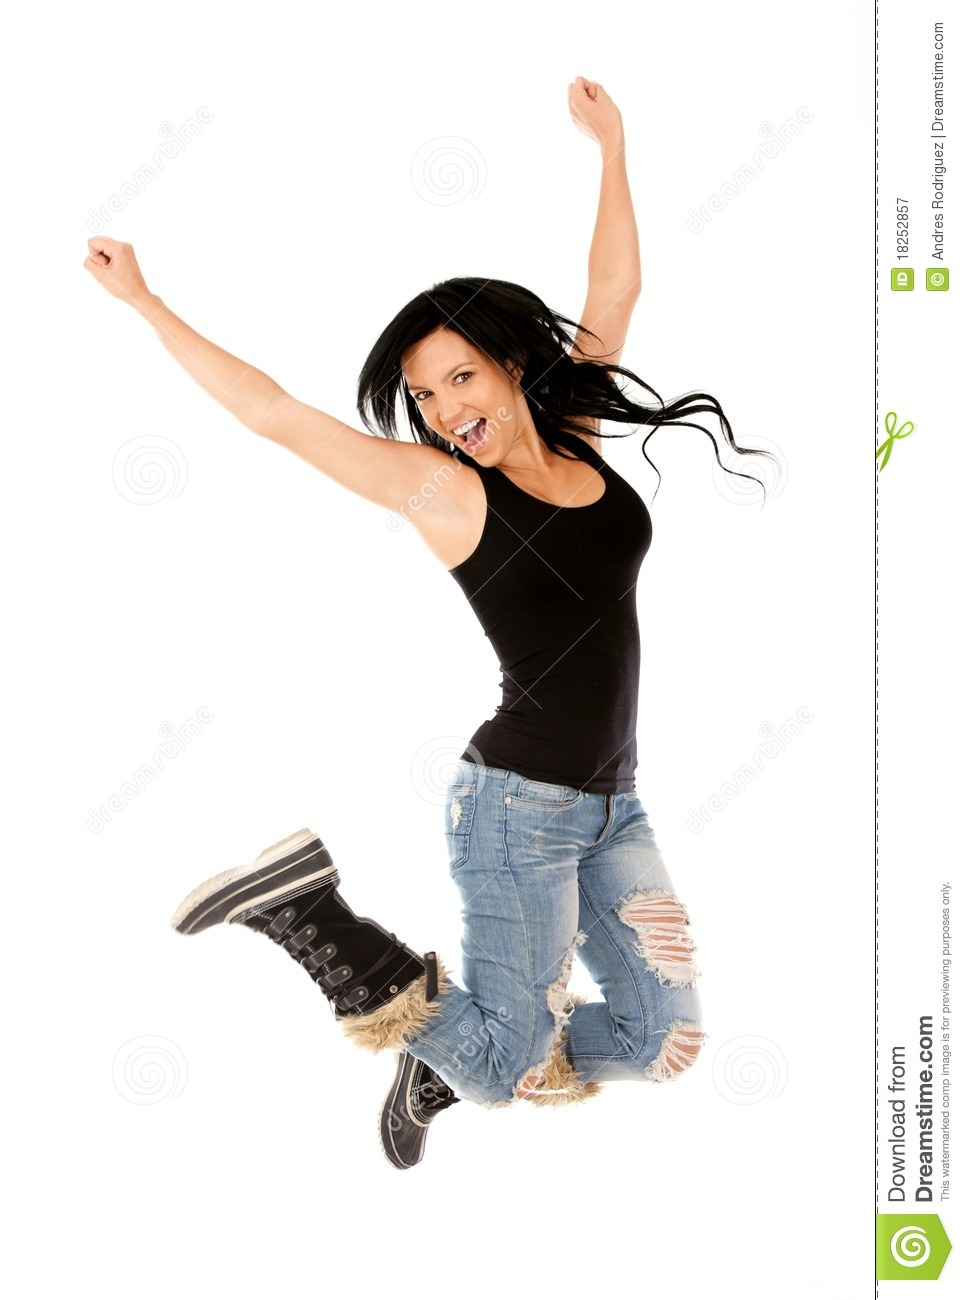 happy-woman-jumping-18252857.jpg